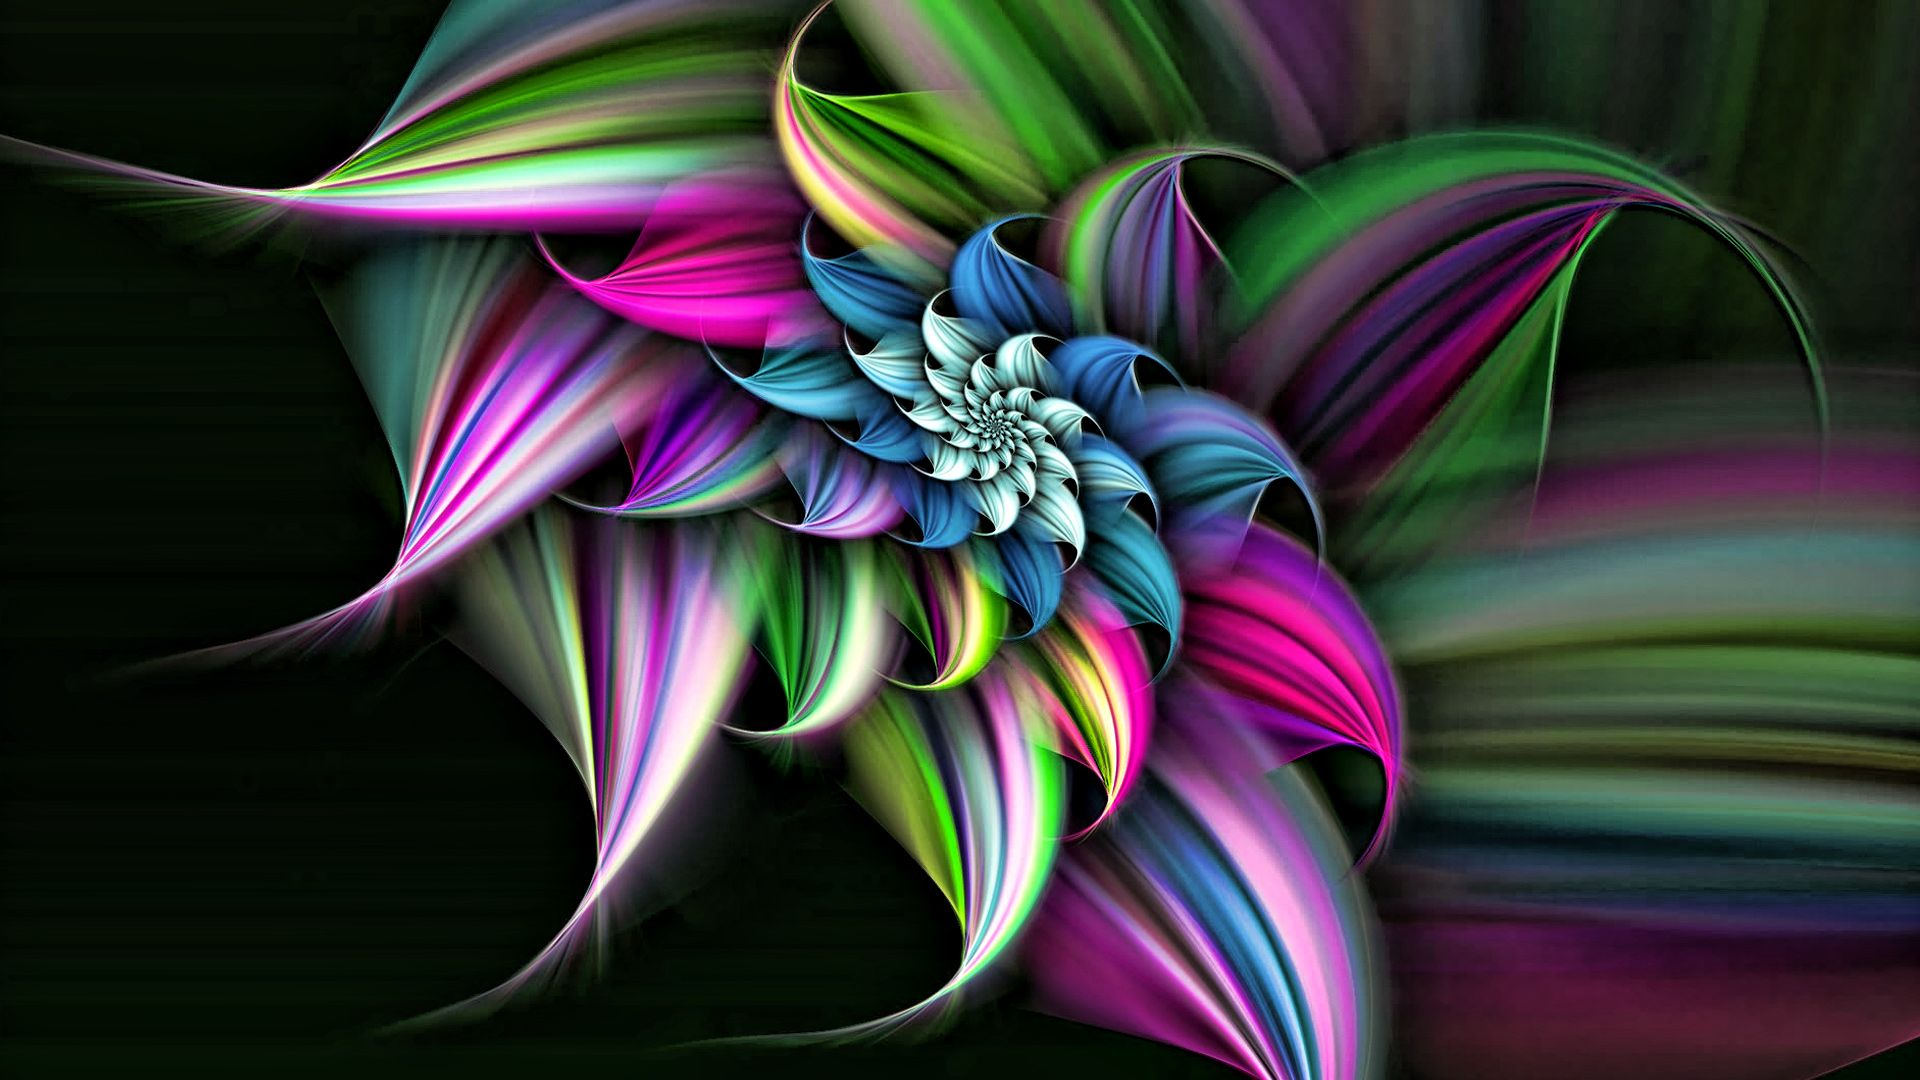 Cool Wallpapers 3d 1080p Free Download Flower wallpaper